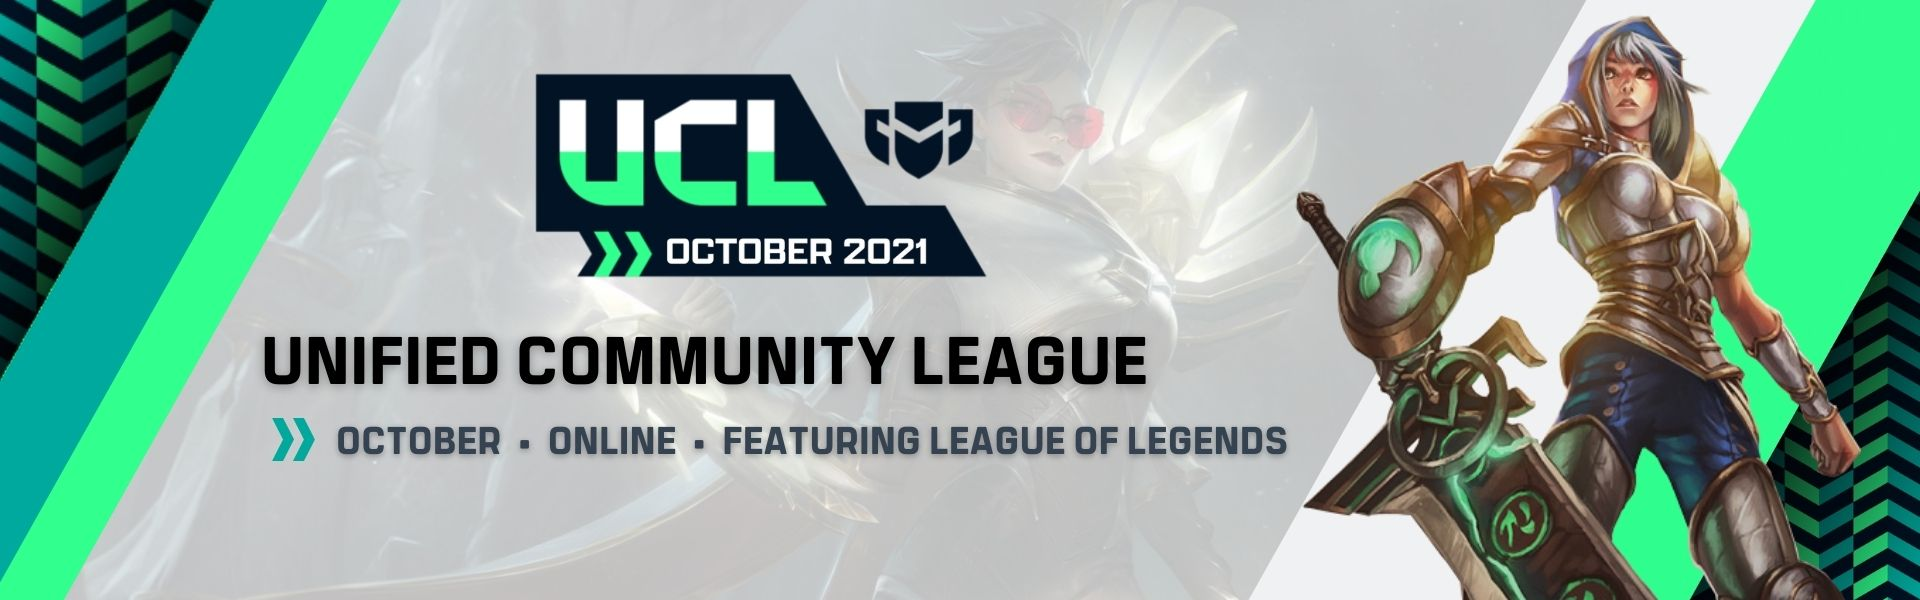 October UCL: Featuring League of Legends